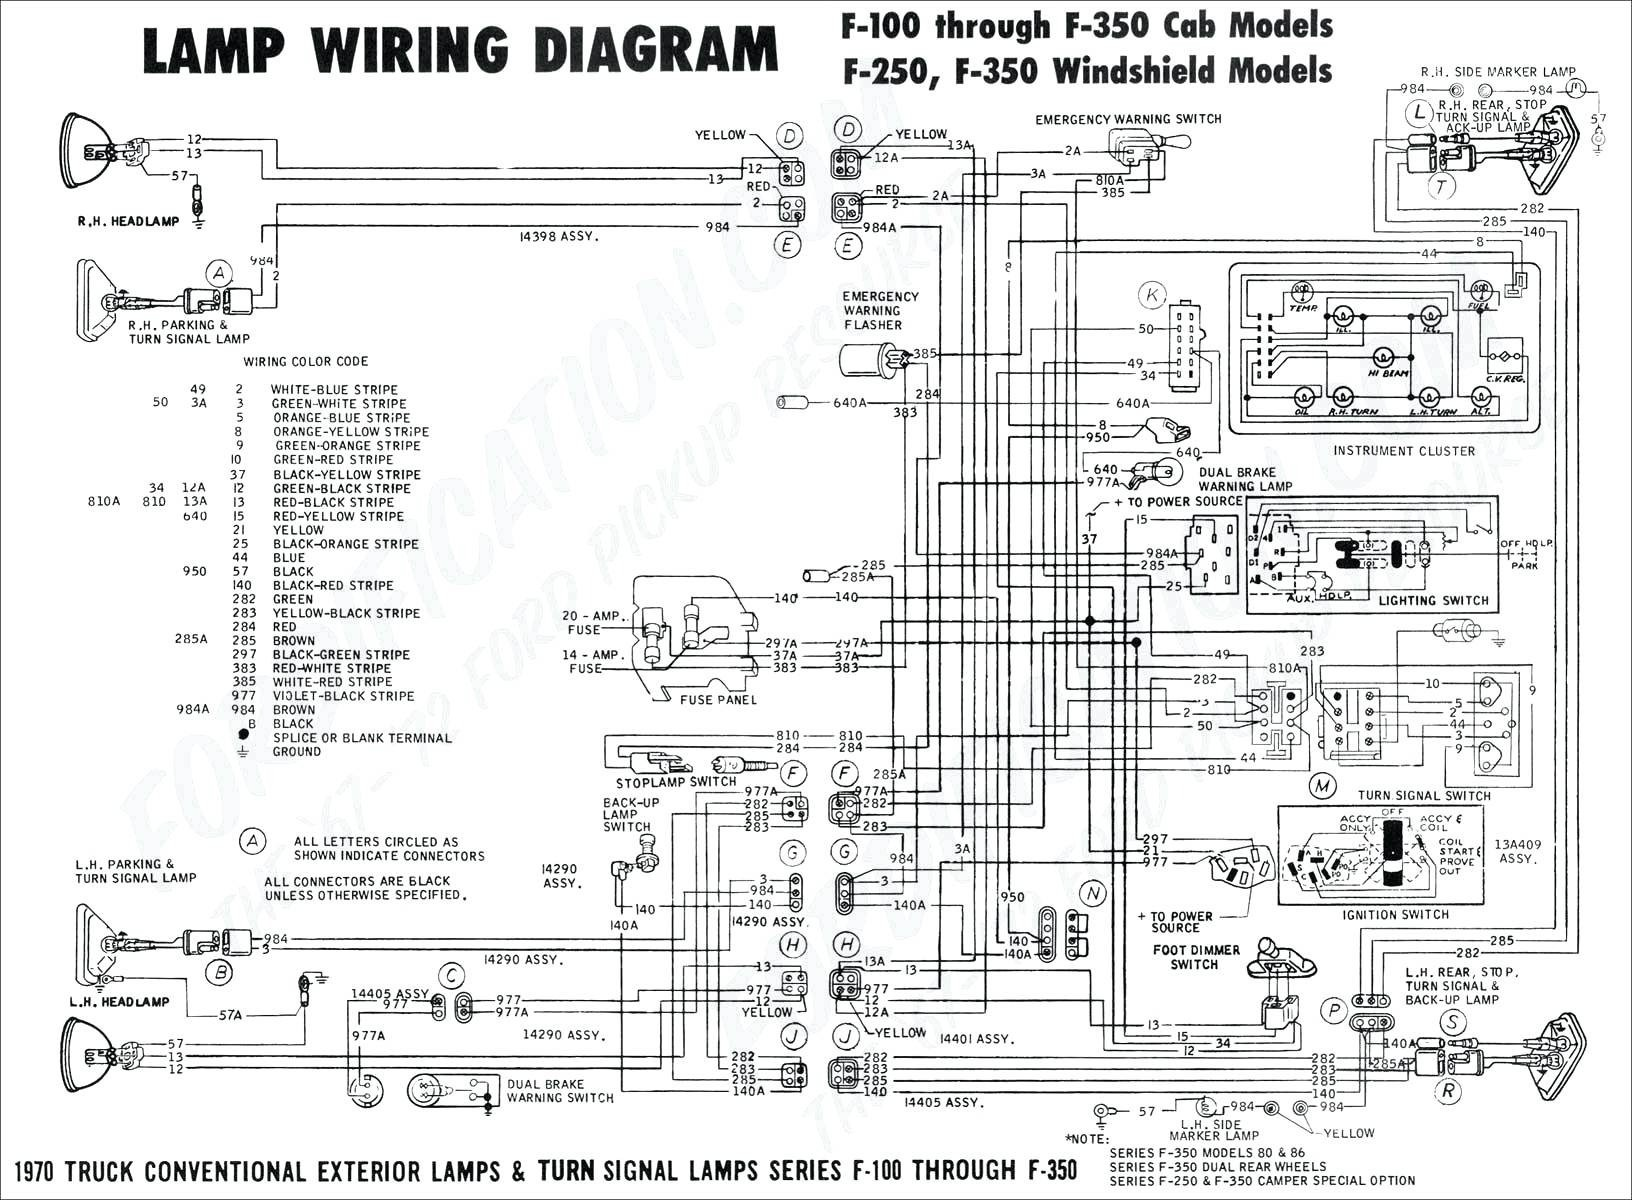 ford f350 trailer wiring diagram Collection Semi Trailer Wiring Diagram Unique Wiring Diagram ford F150 DOWNLOAD Wiring Diagram